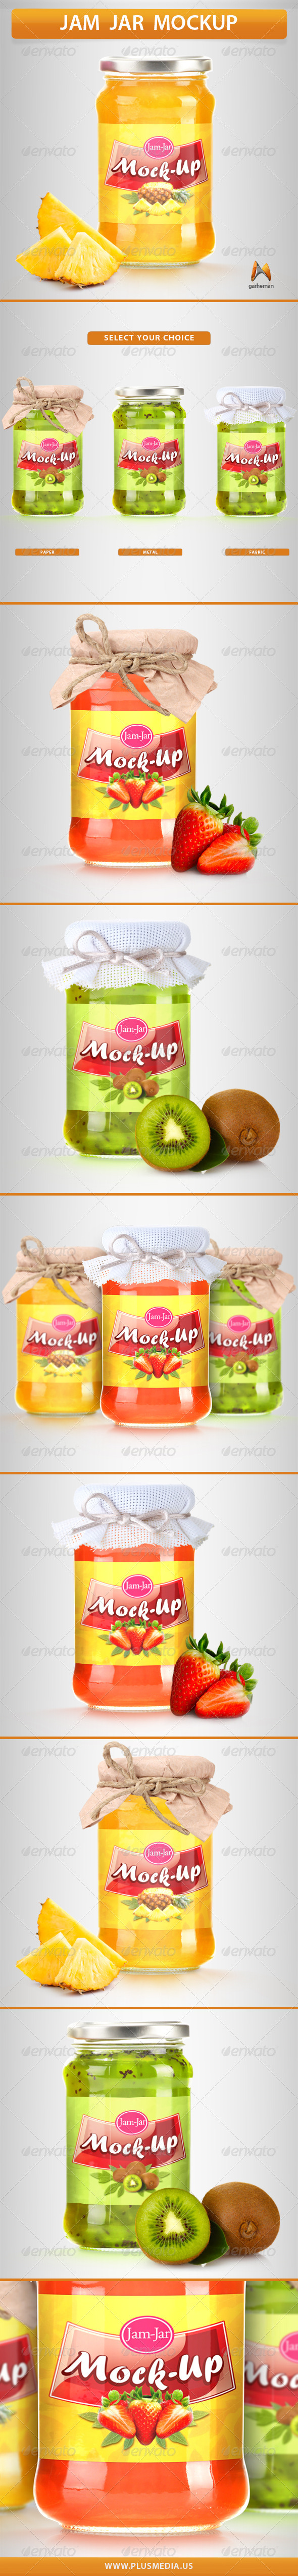 GraphicRiver Jam Jar Mockup 7266781